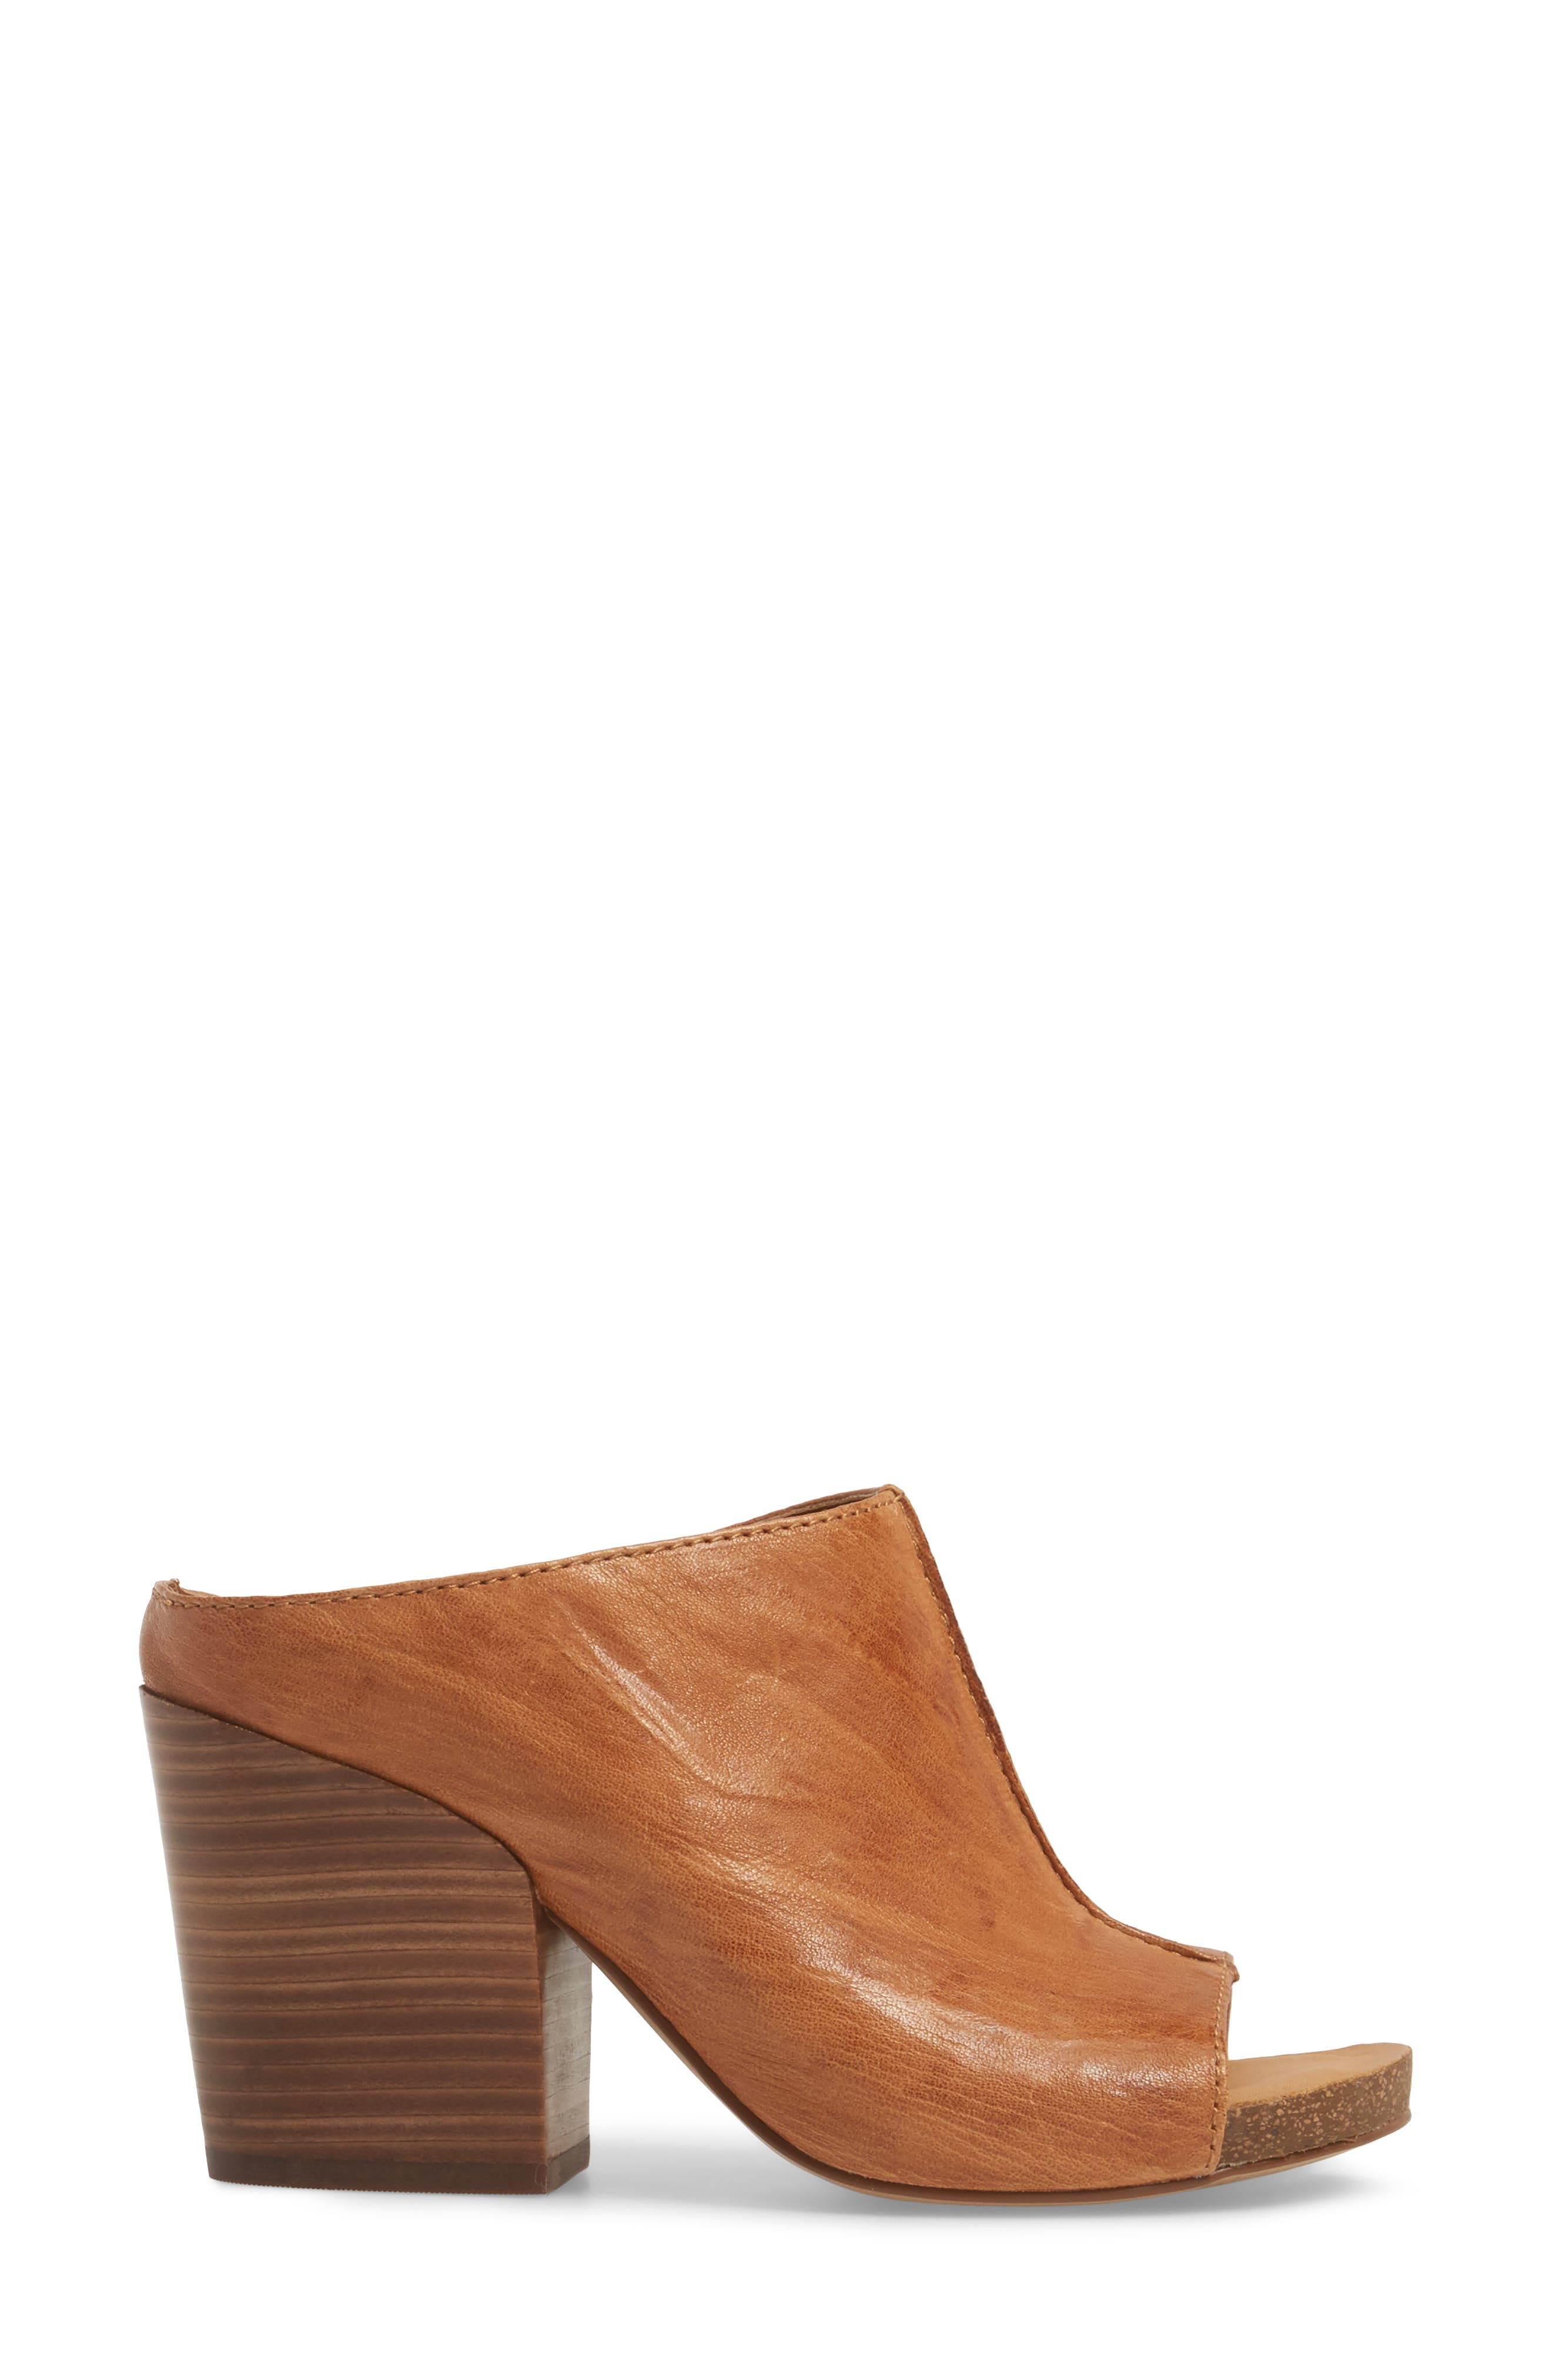 Isabella Open Toe Mule,                             Alternate thumbnail 3, color,                             Luggage Leather